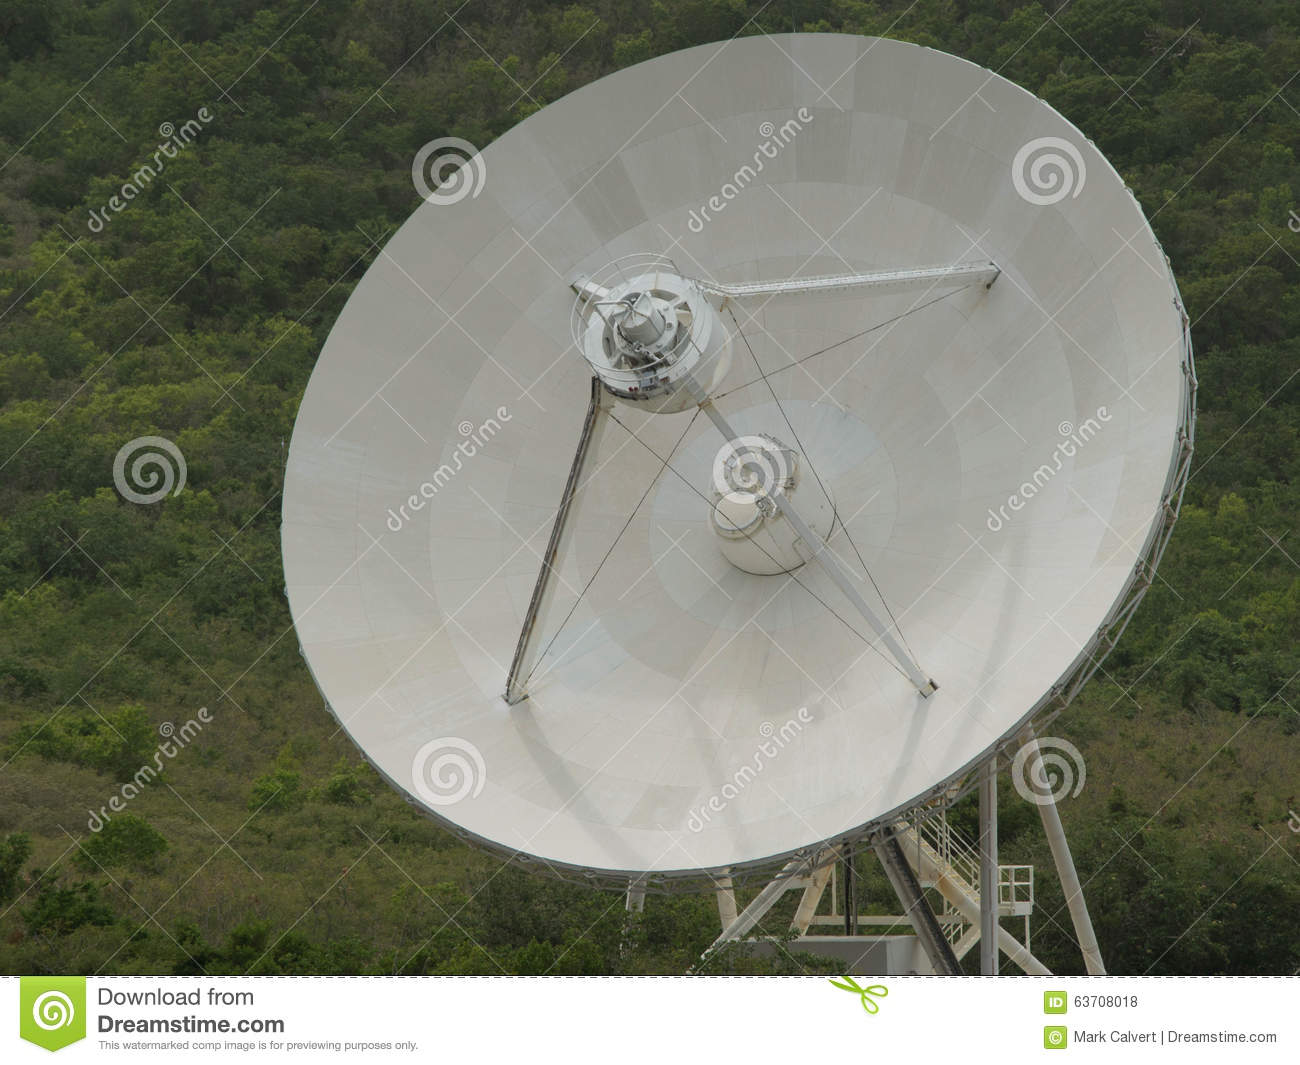 nasa satellite dish - photo #17